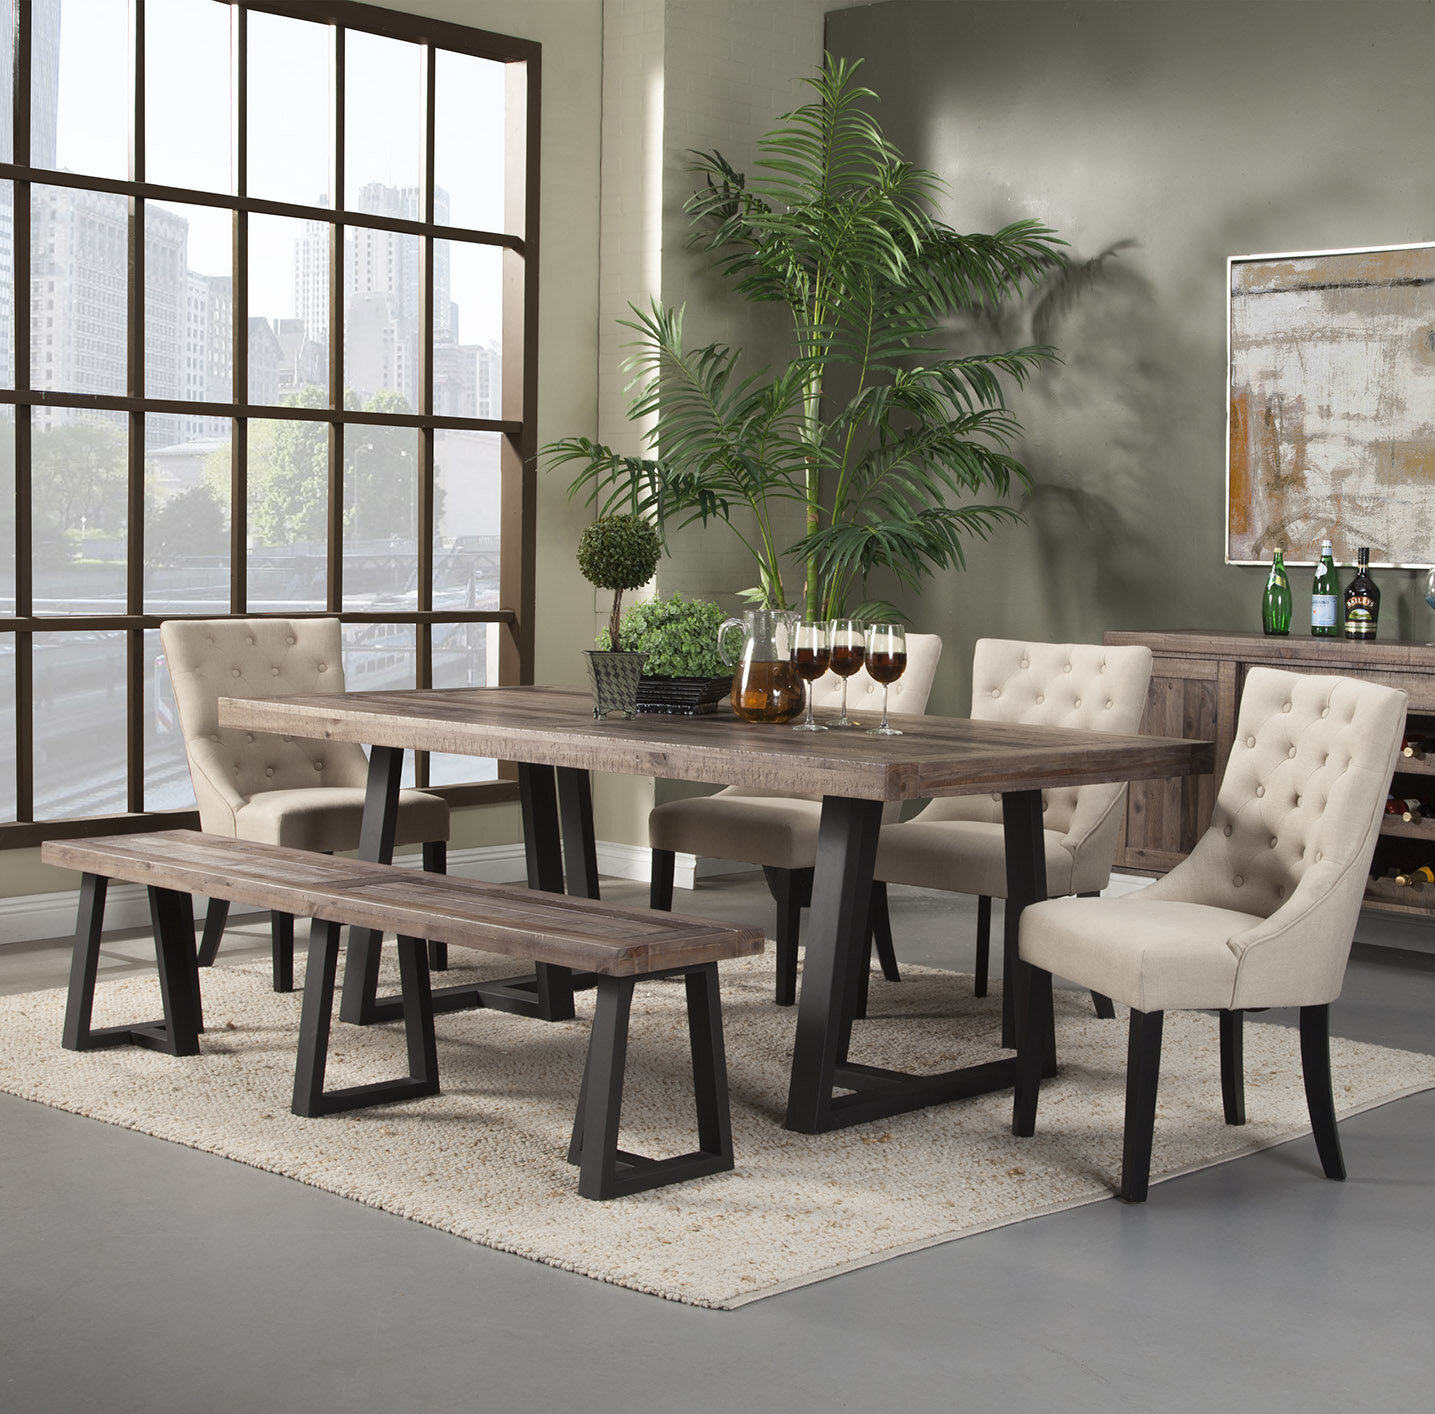 org two breakfast for home dining set dinning piece bench table with room